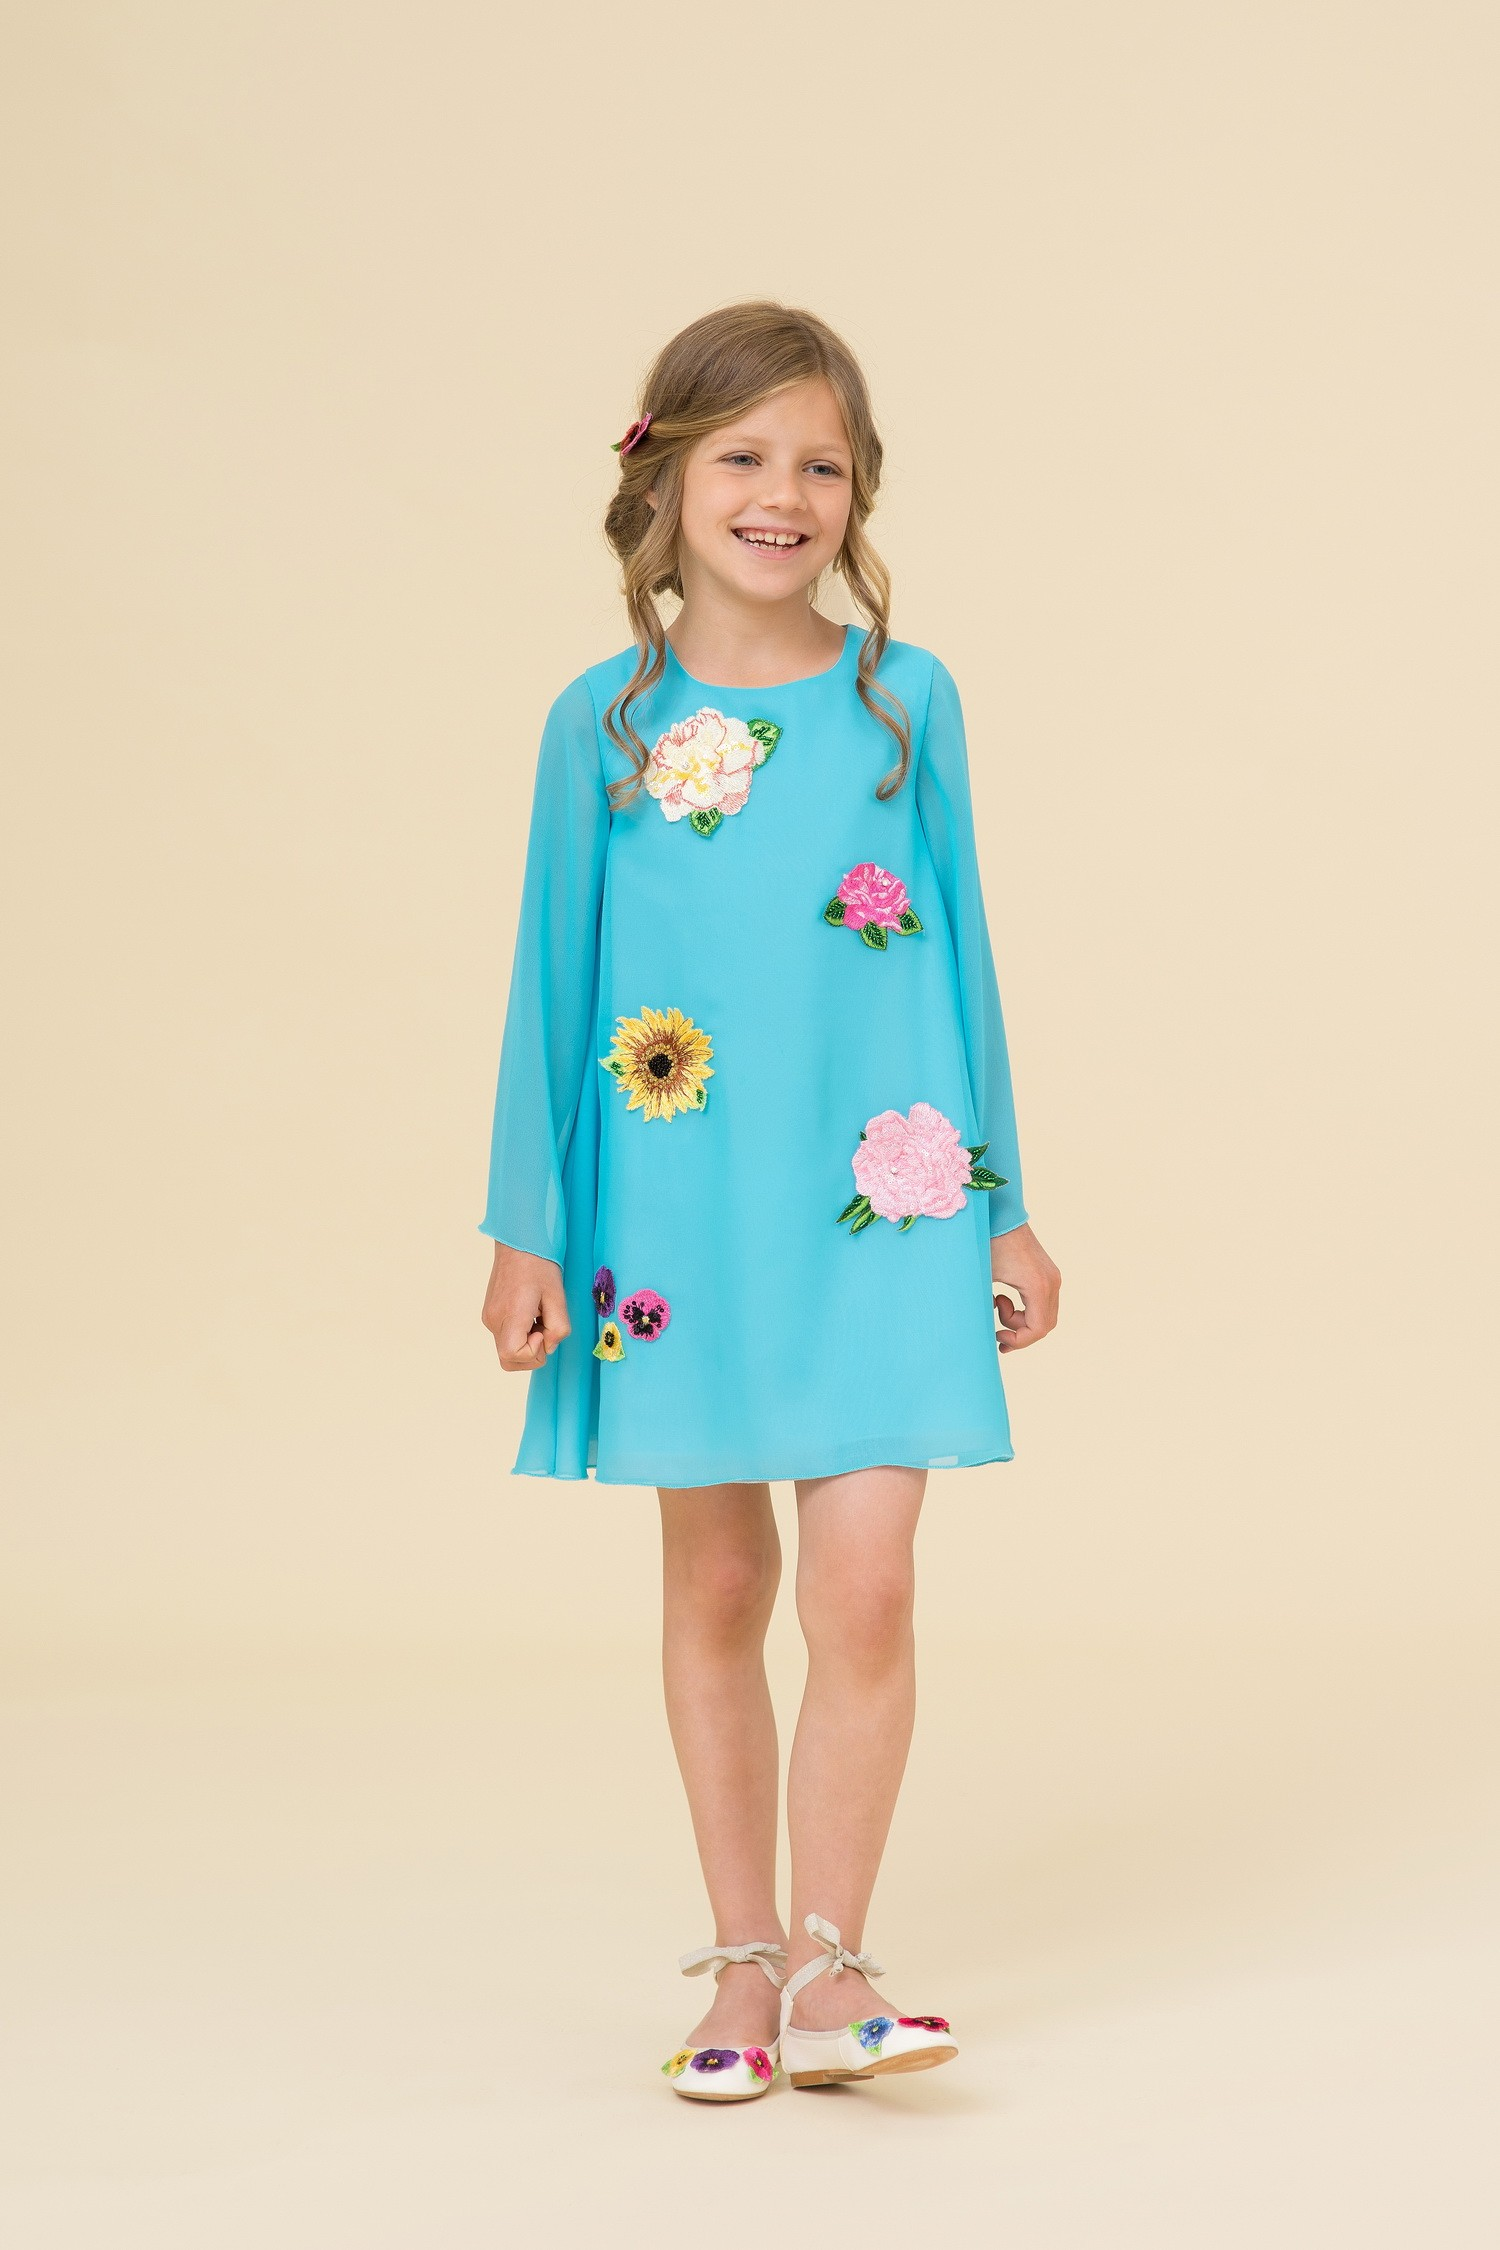 Blue chiffon dress with embroidery